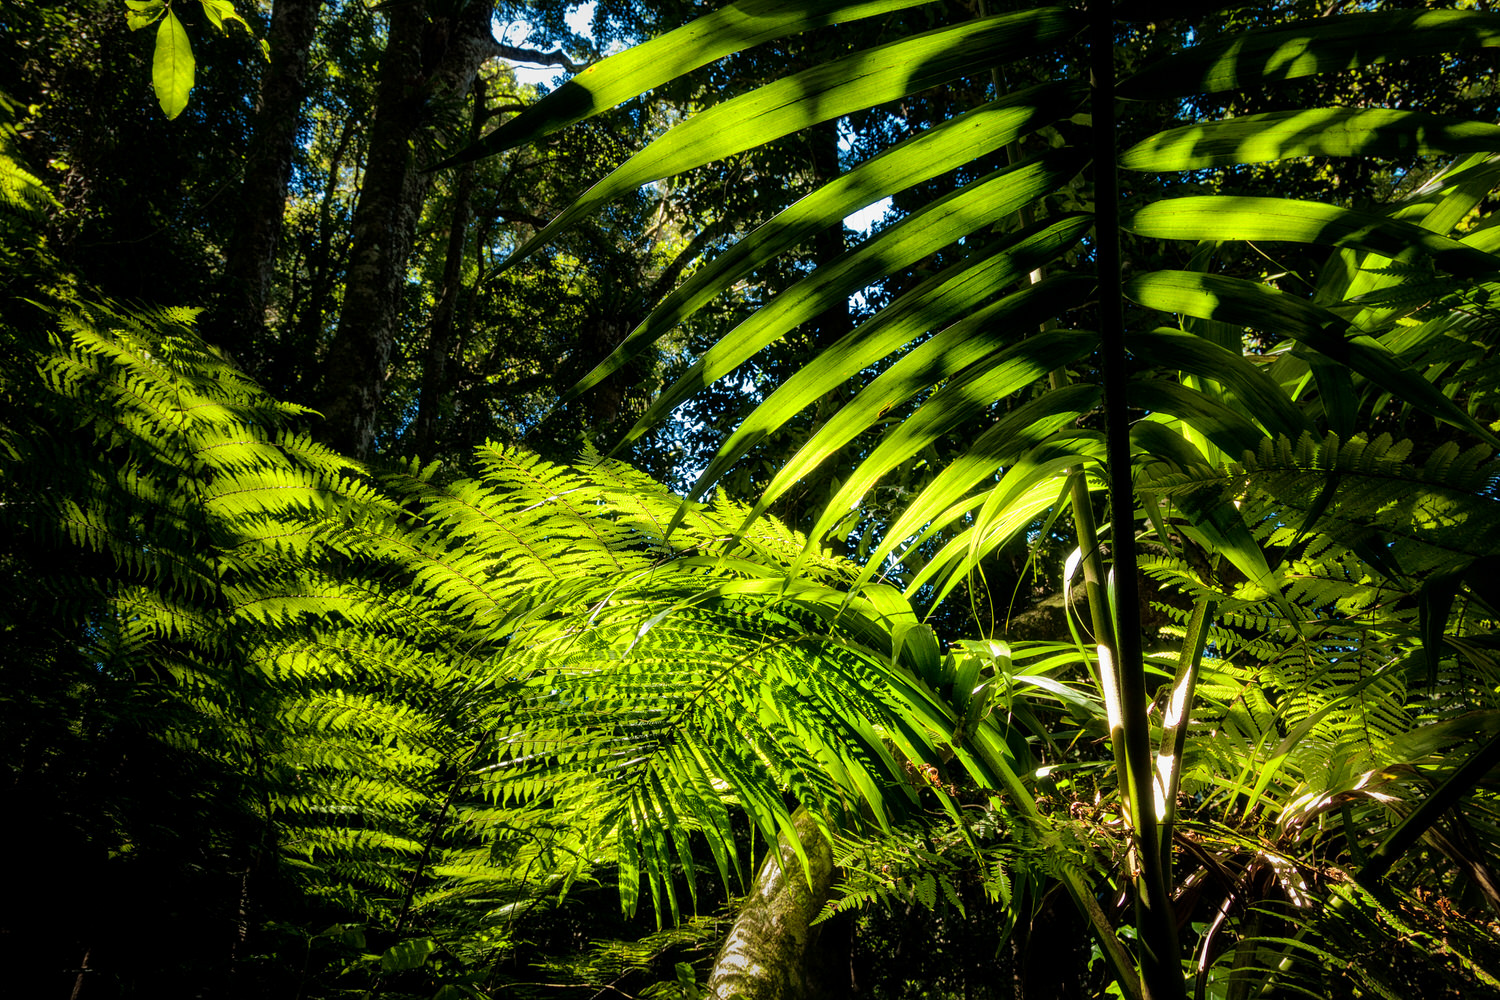 Strong    backlight    illuminates    tree ferns    and foliage on    Mount Tamborine    in Queensland, Australia.